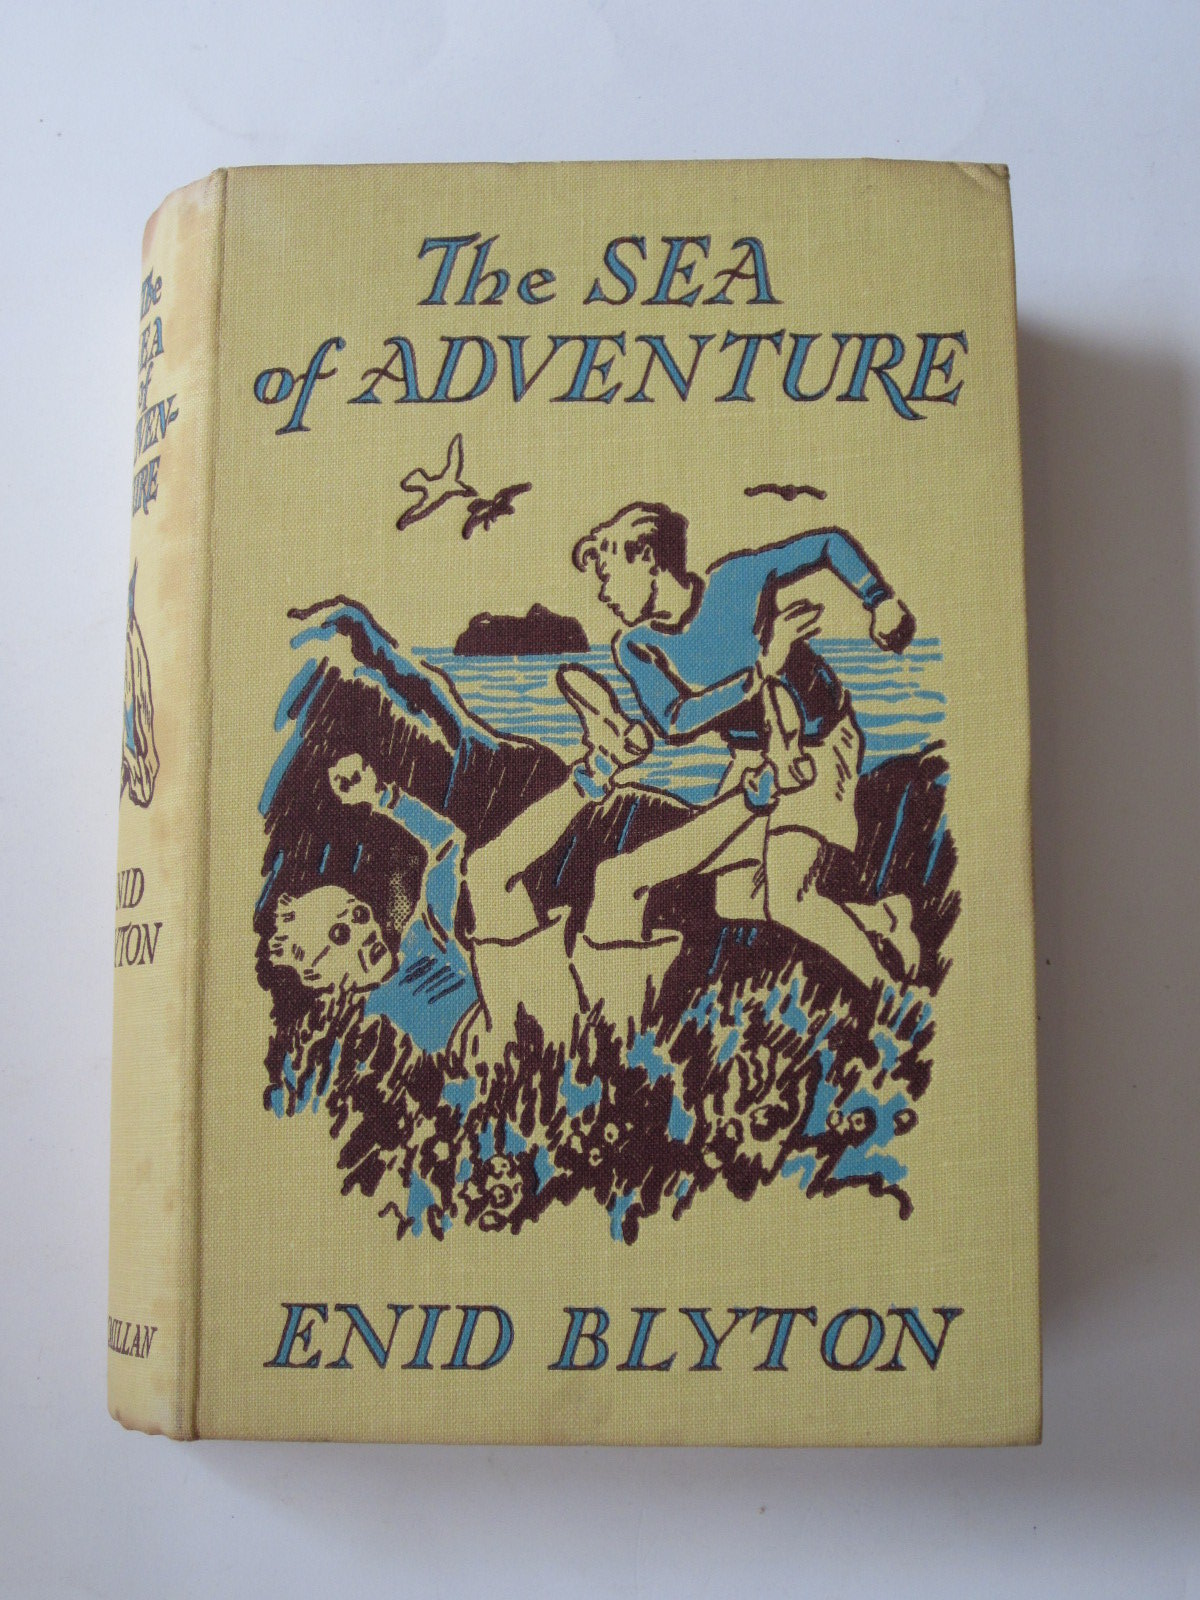 Photo of THE SEA OF ADVENTURE written by Blyton, Enid illustrated by Tresilian, Stuart published by Macmillan & Co. Ltd. (STOCK CODE: 1308166)  for sale by Stella & Rose's Books